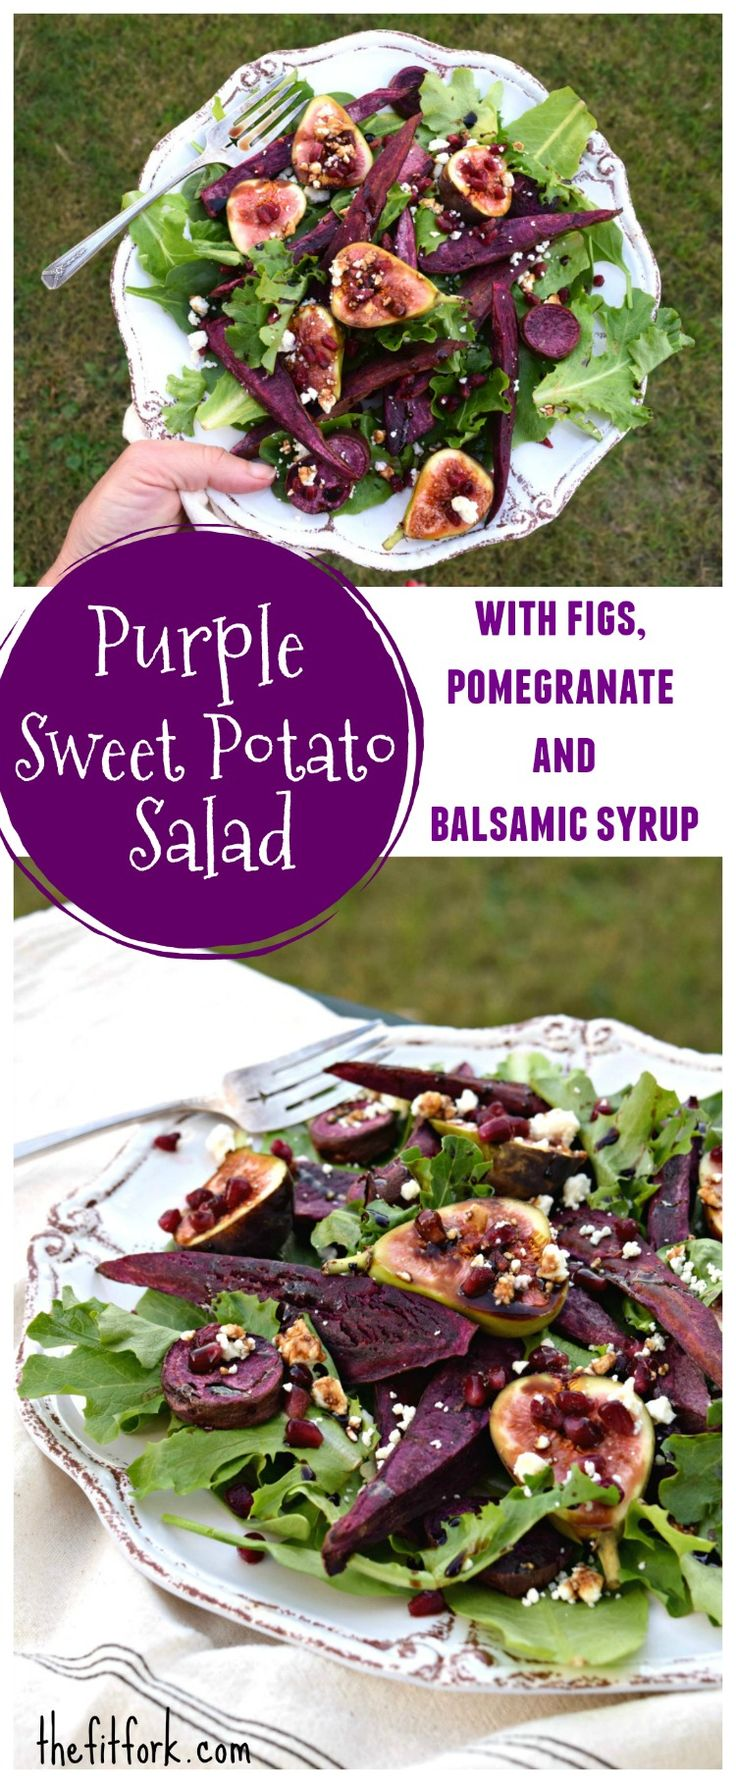 Purple Sweet Potato Salad with Figs, Pomegranate and Balsamic Syrup -- a beautiful and nutrient-packed late fall salad!